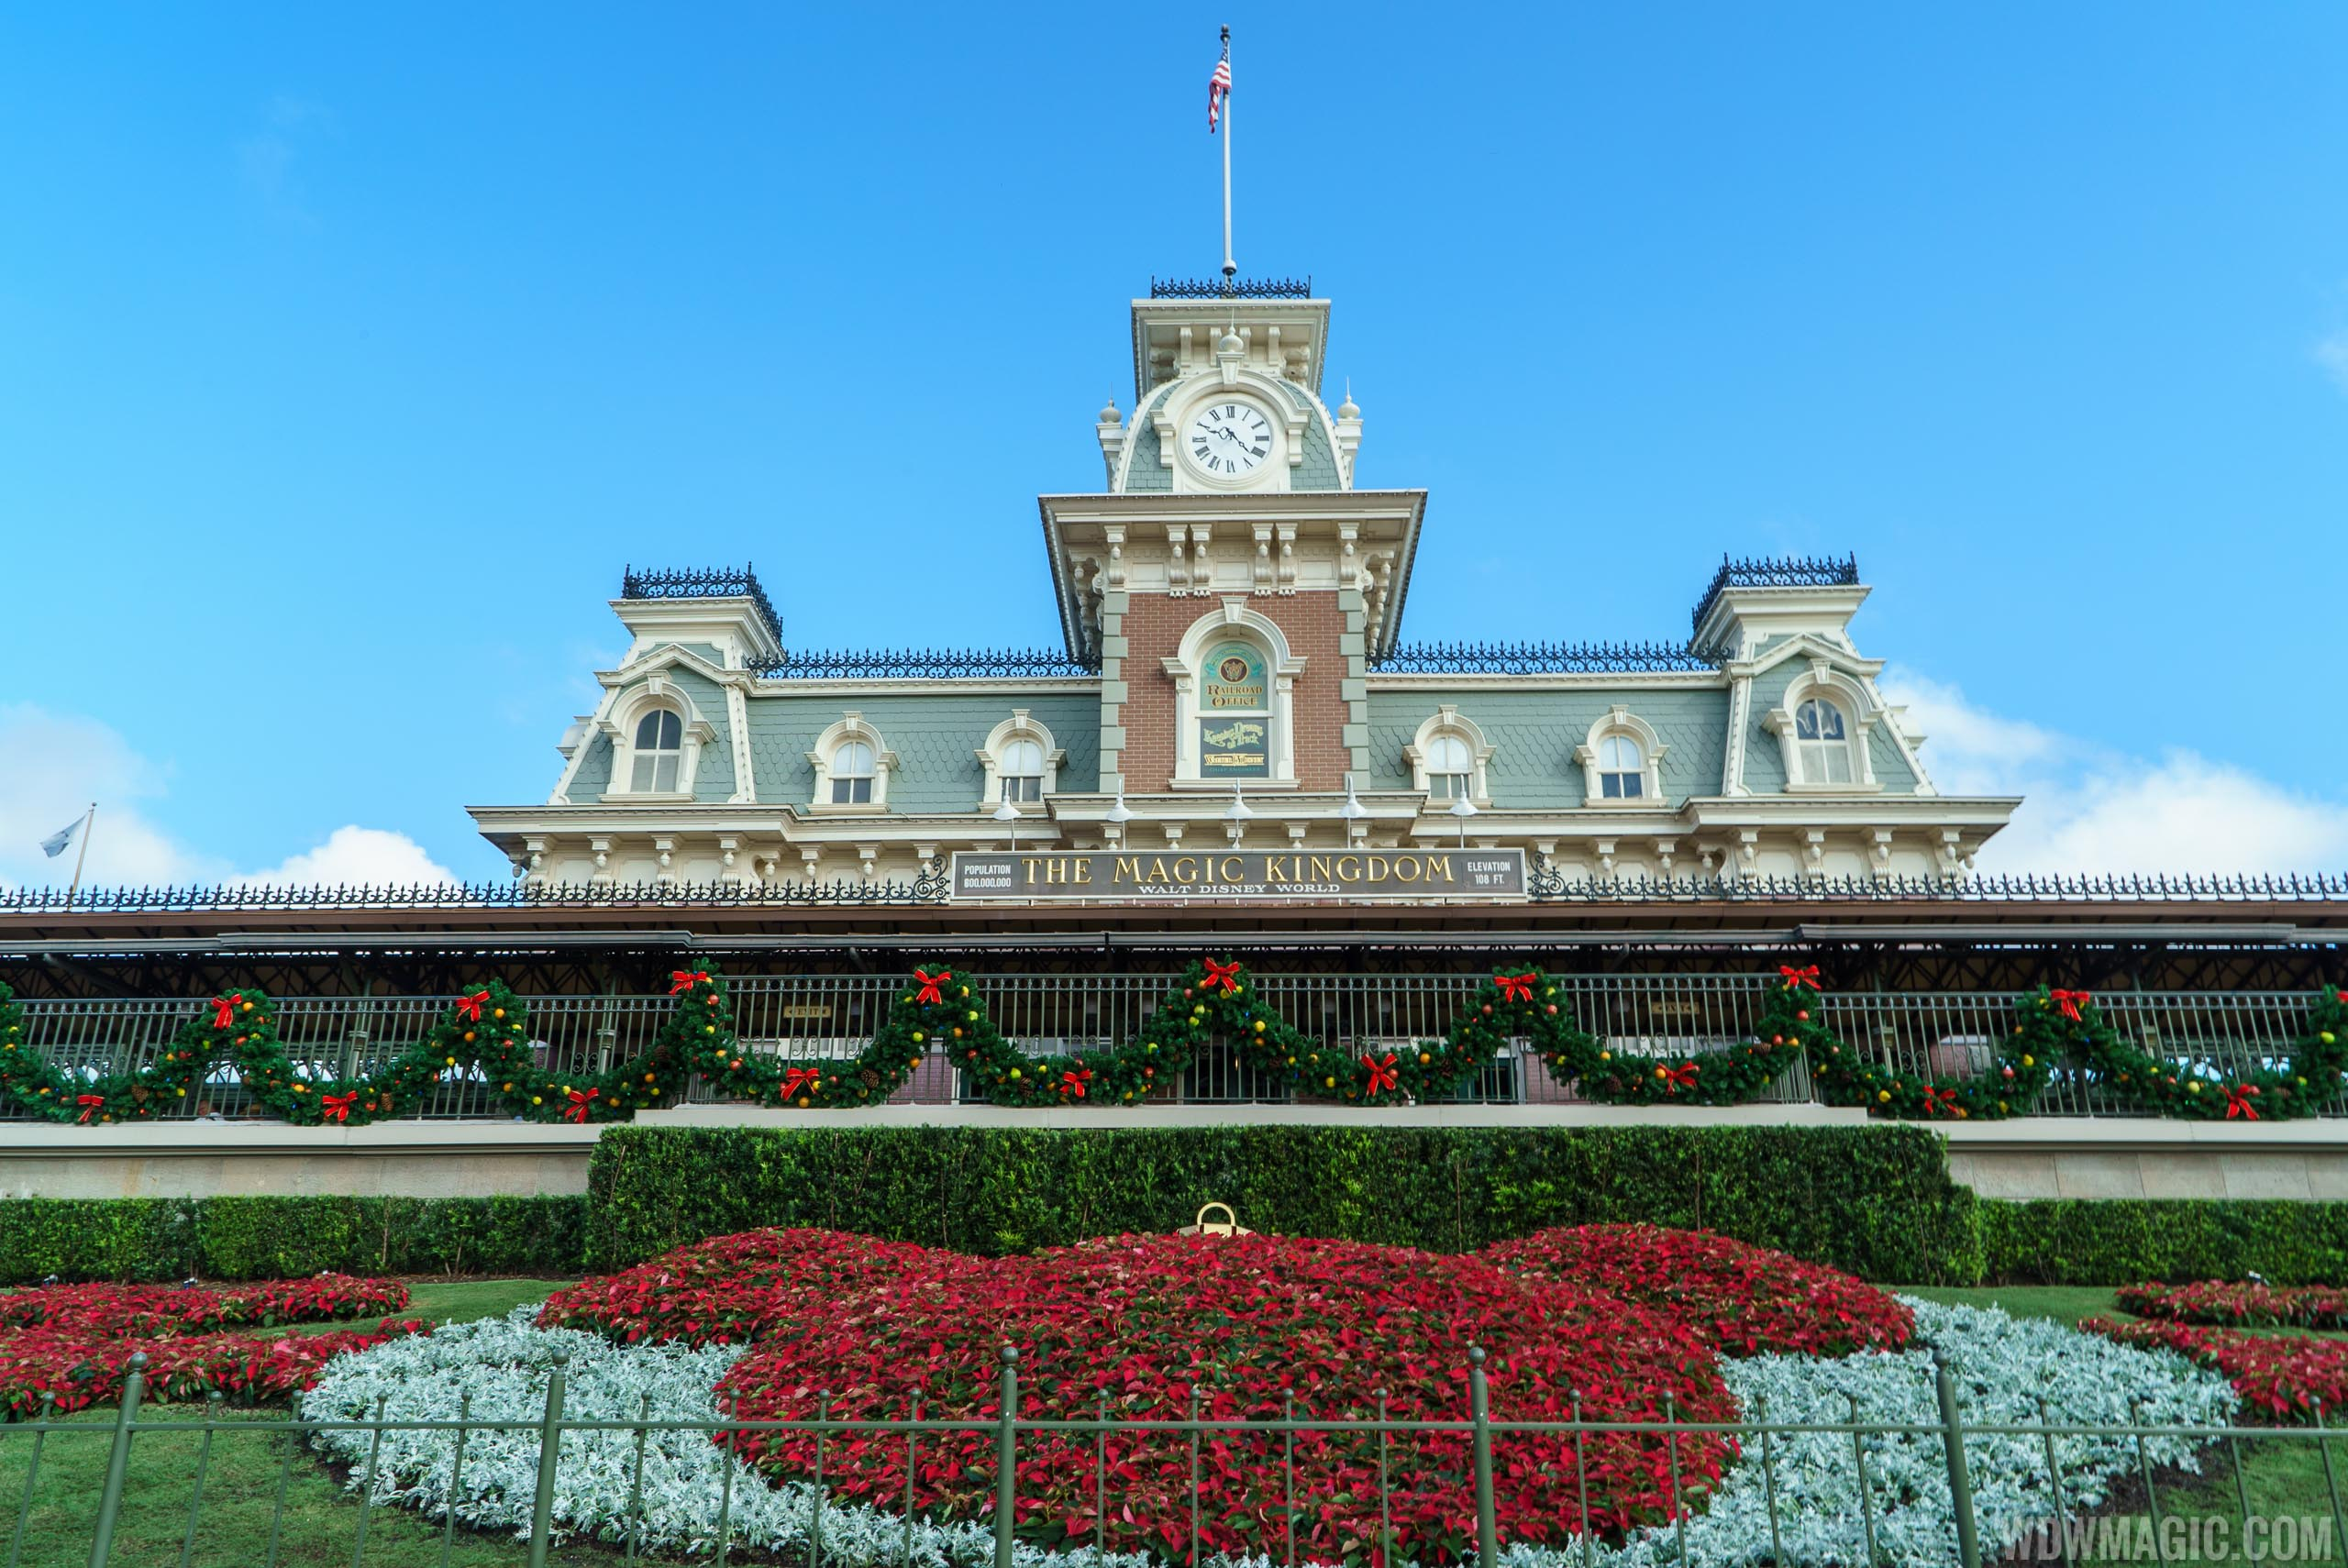 Holidays decorations at the Magic Kingdom 2015